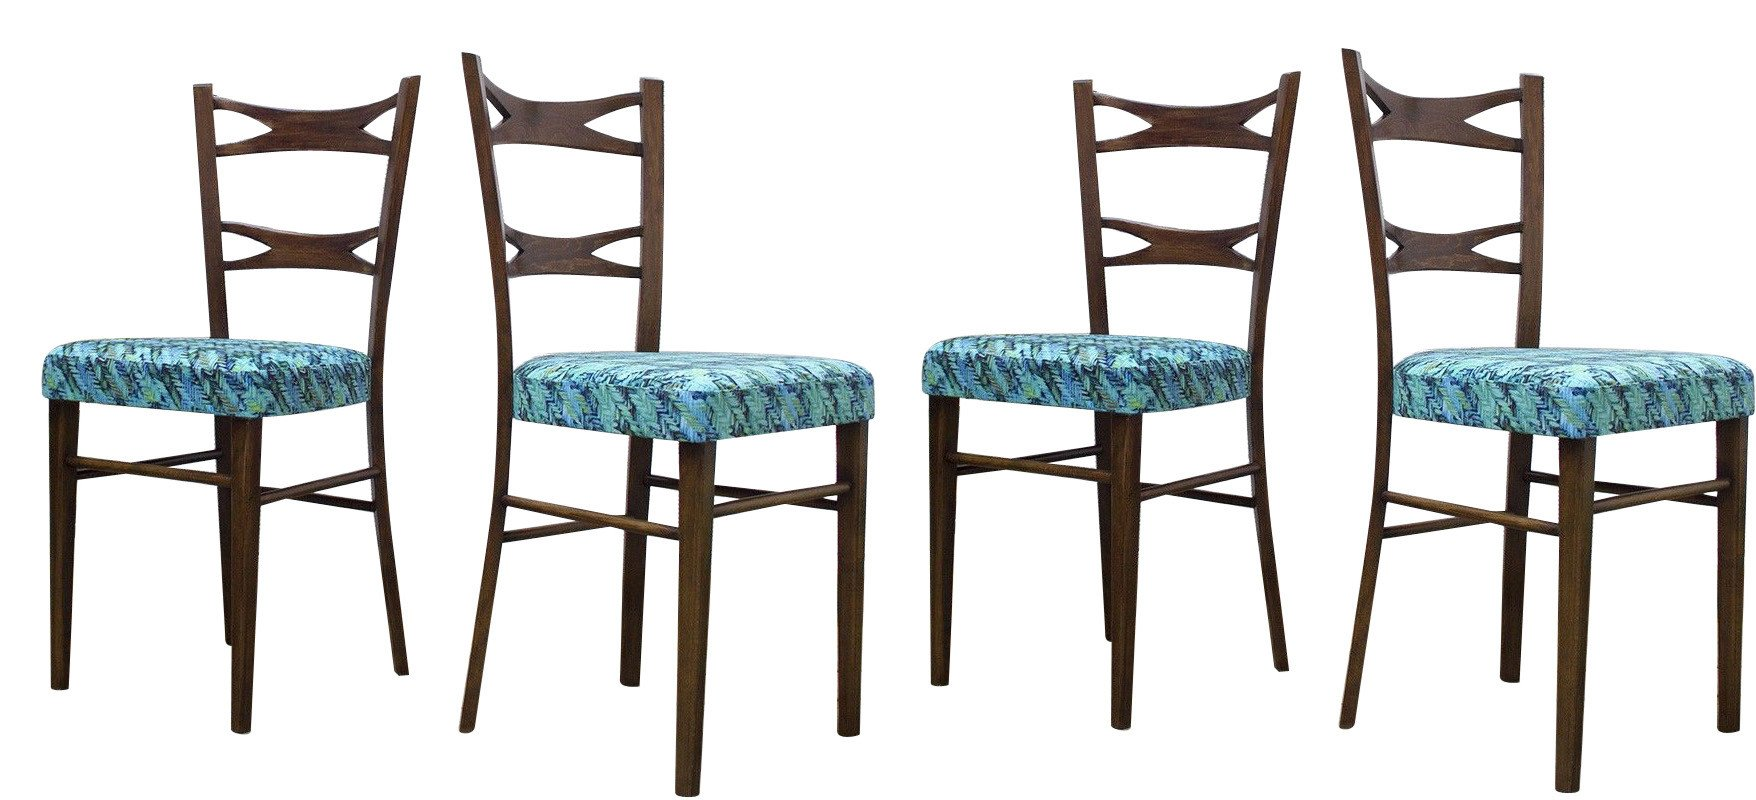 Set of Four Chairs, Muebles Mocholi, Spain, 1960s